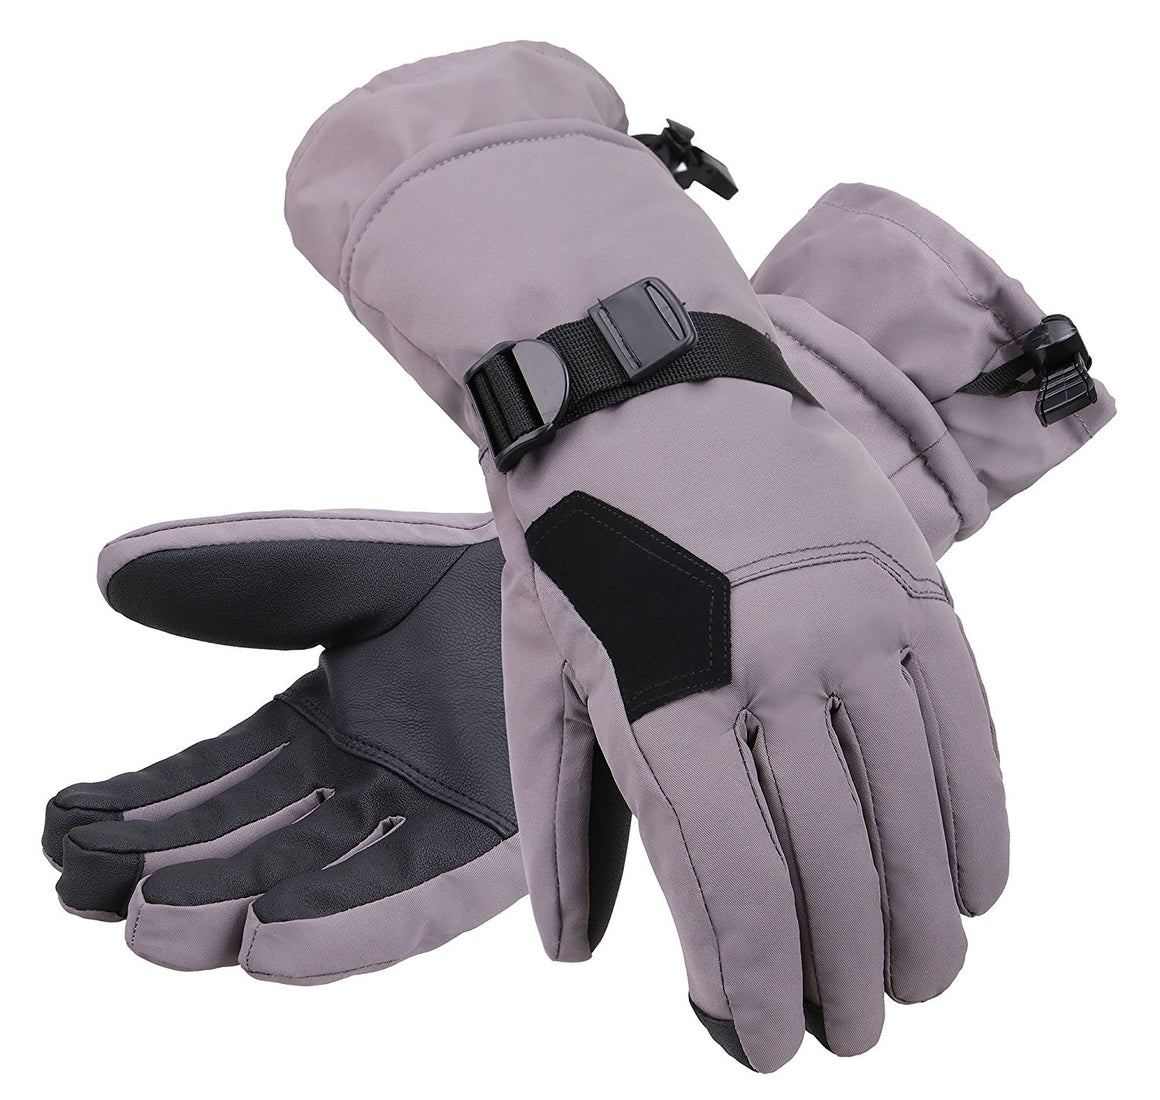 Andorra Men's Abstract Deluxe Touchscreen Sport Ski Gloves - Grey